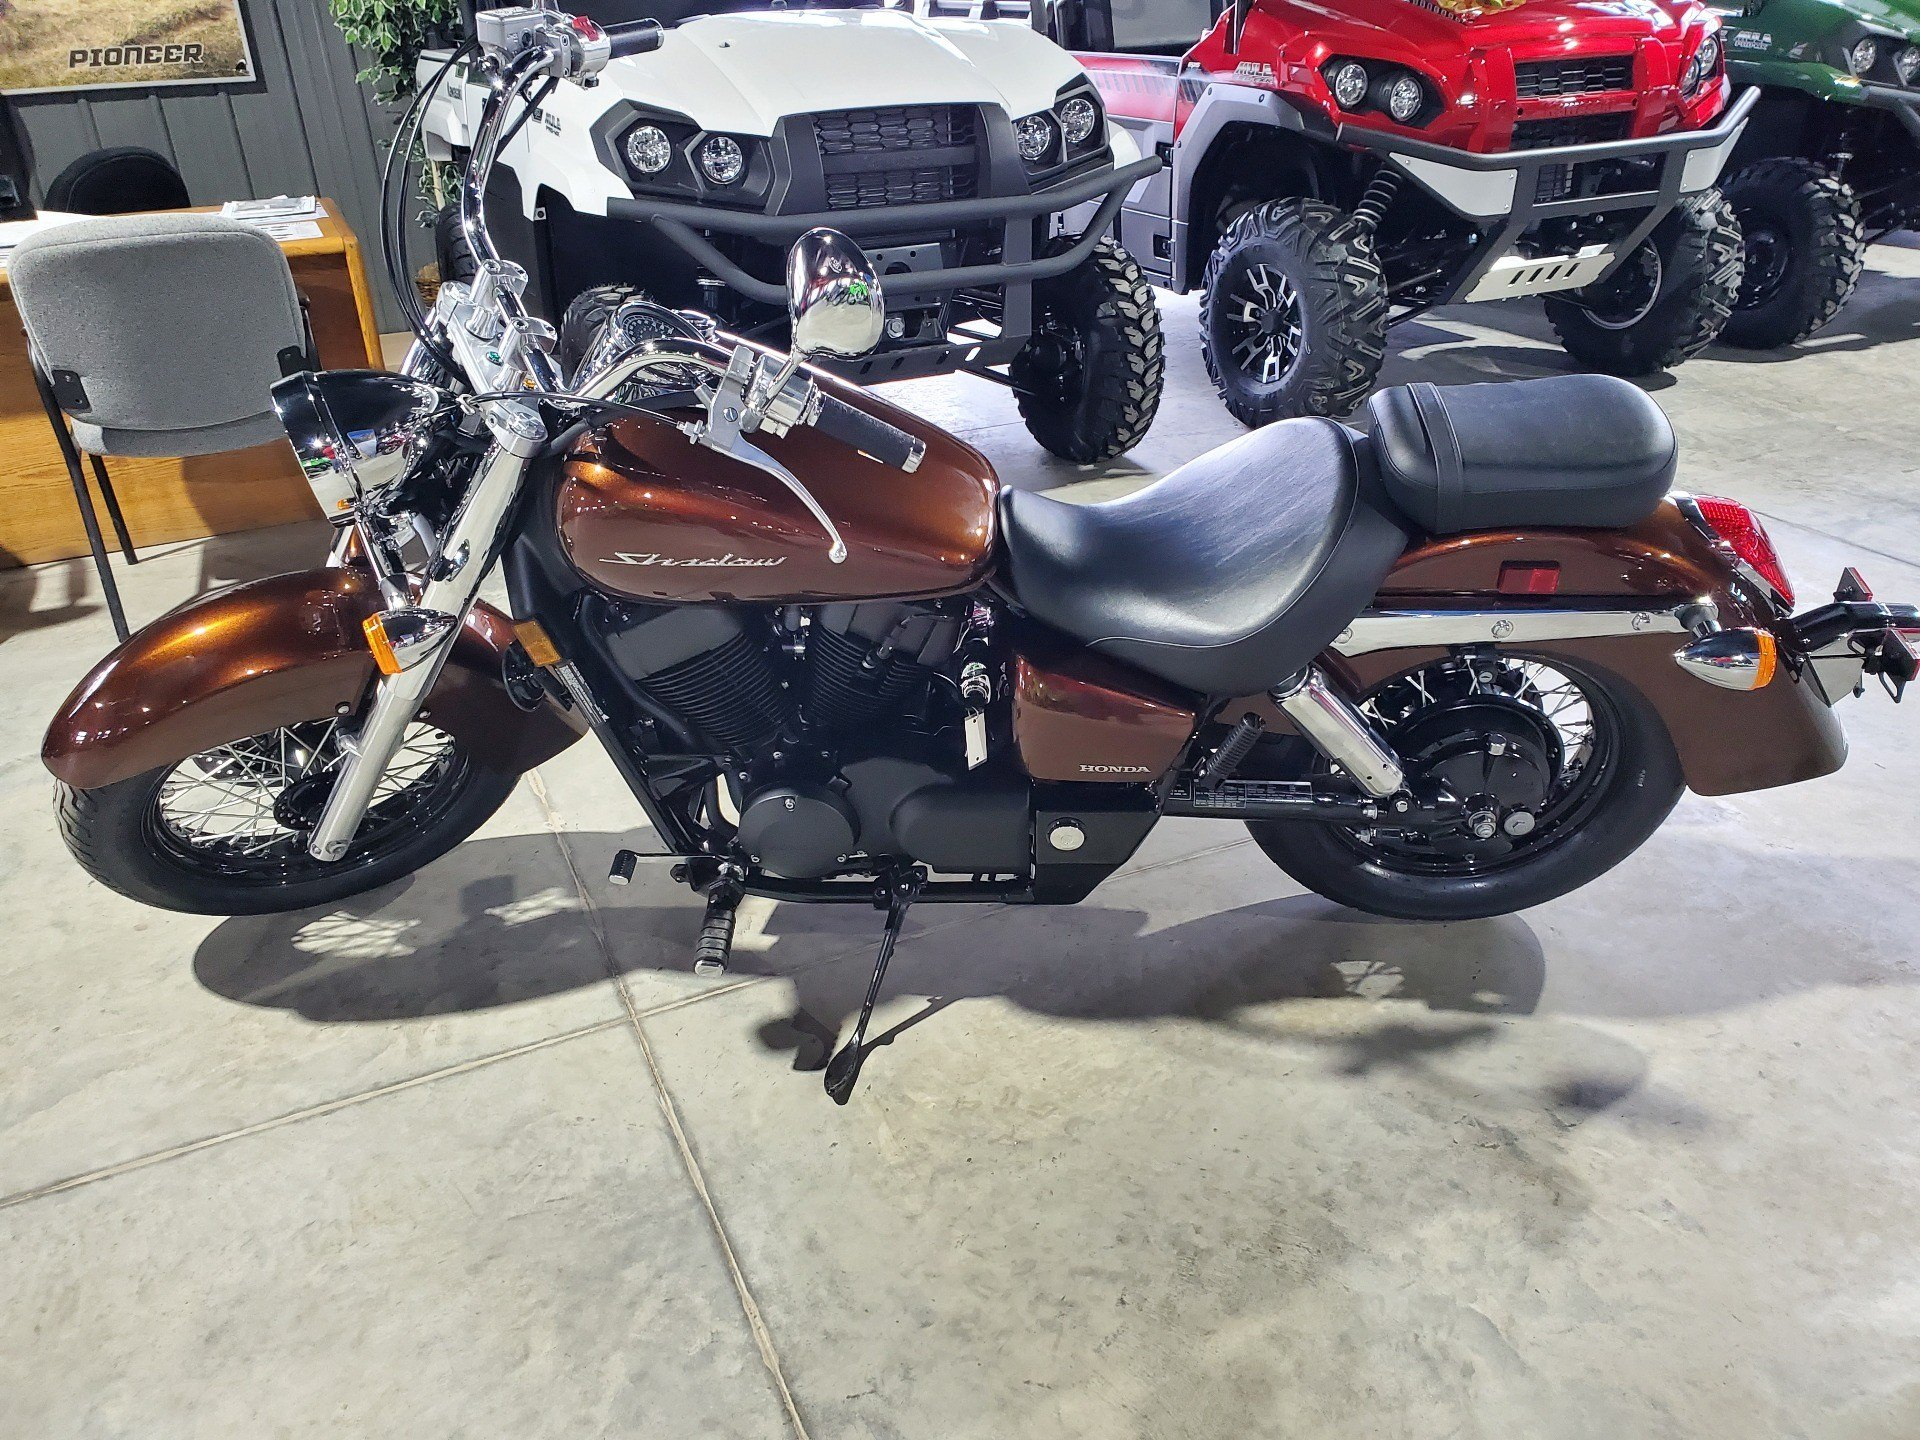 2020 Honda Shadow Aero 750 in Cedar Falls, Iowa - Photo 1